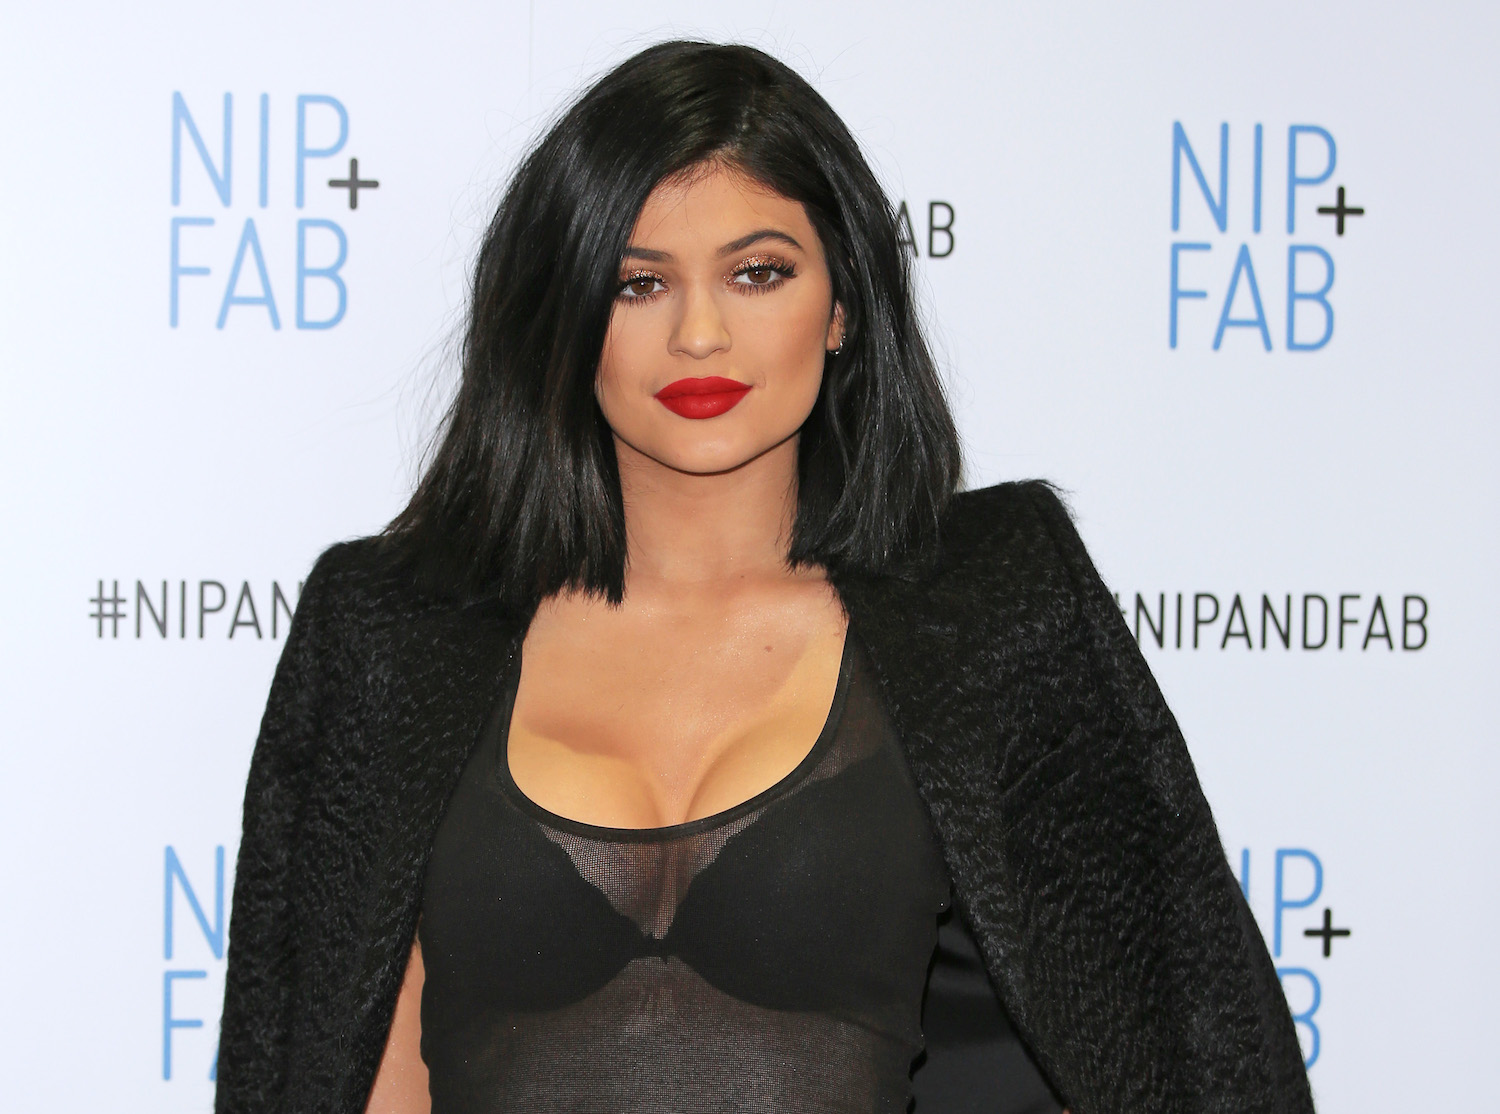 ff0b8a7059f Kylie Jenner Boob Job  The Truth About Her Breasts